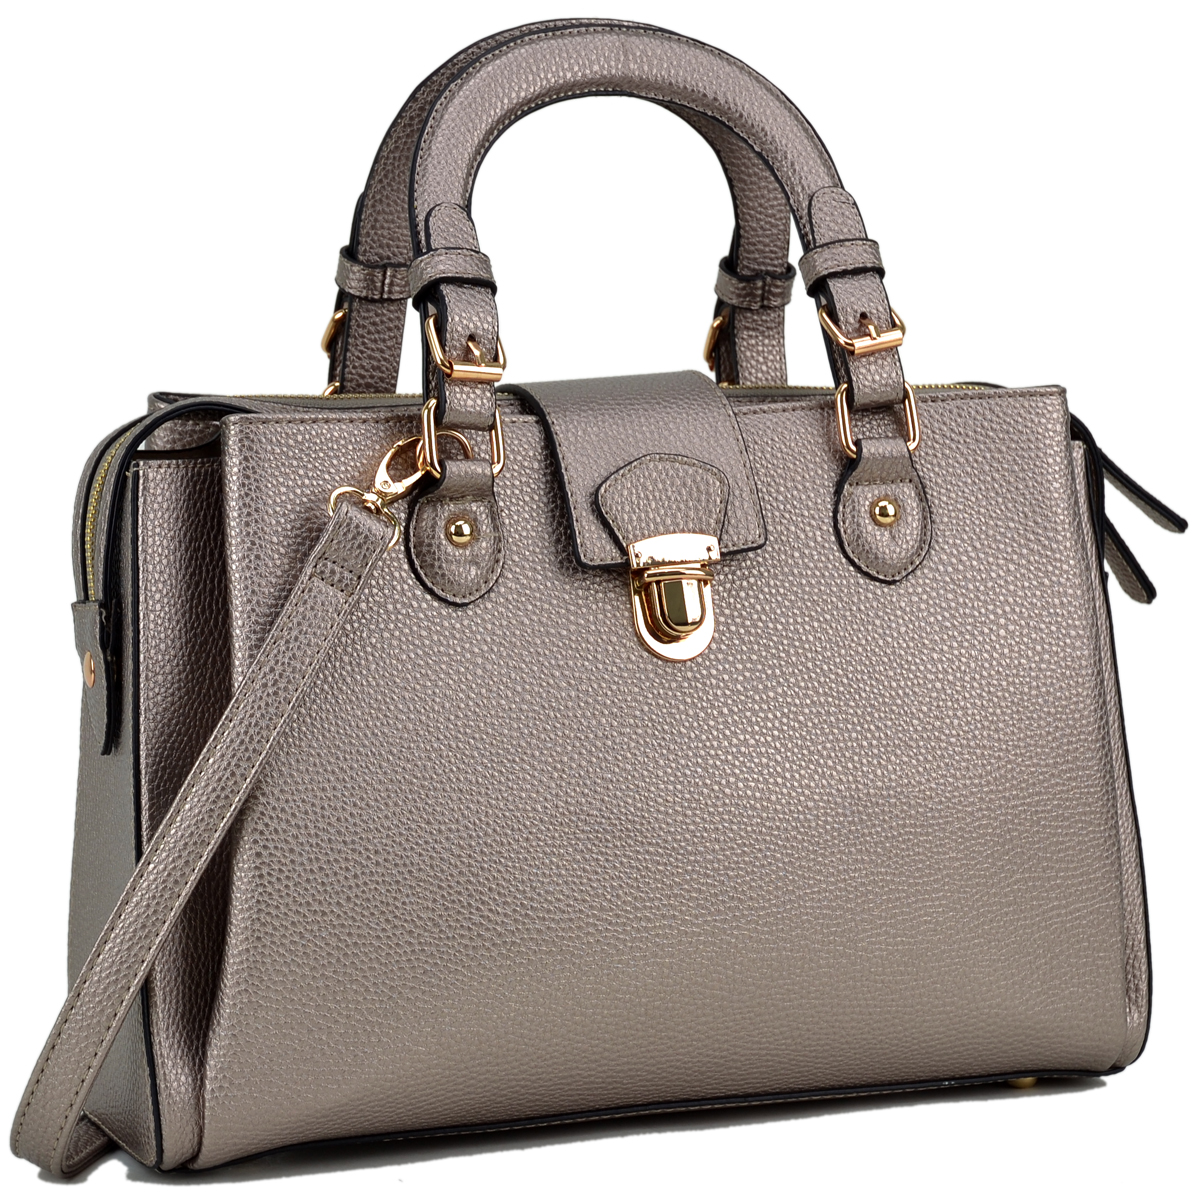 DaseinSatchel with Front Snap Lock Accent